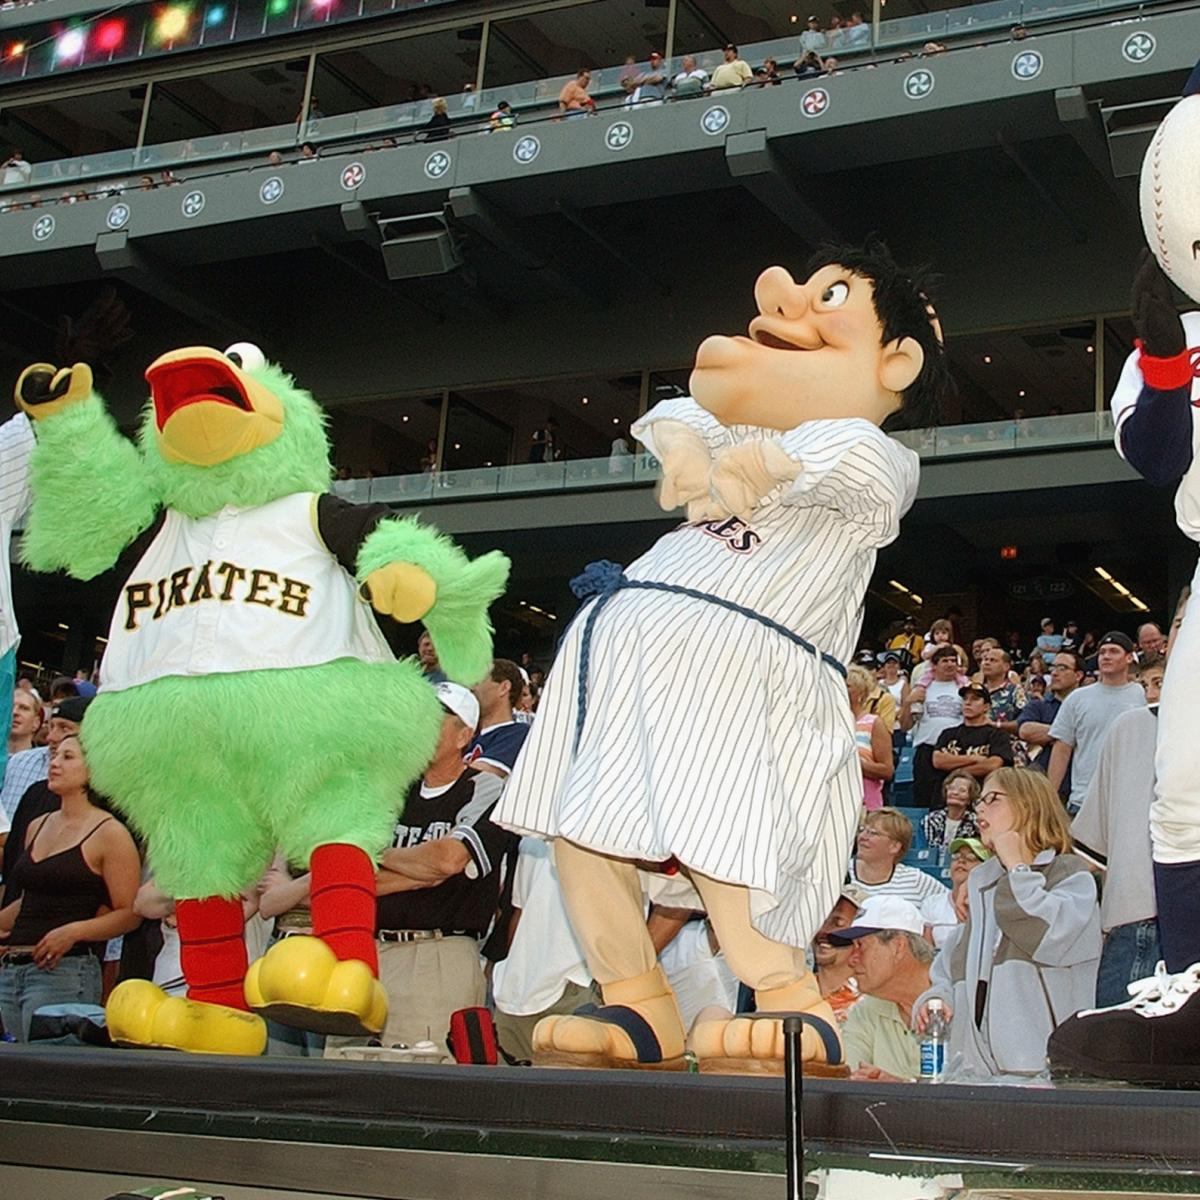 Power Ranking Every MLB Mascot From Worst To Best